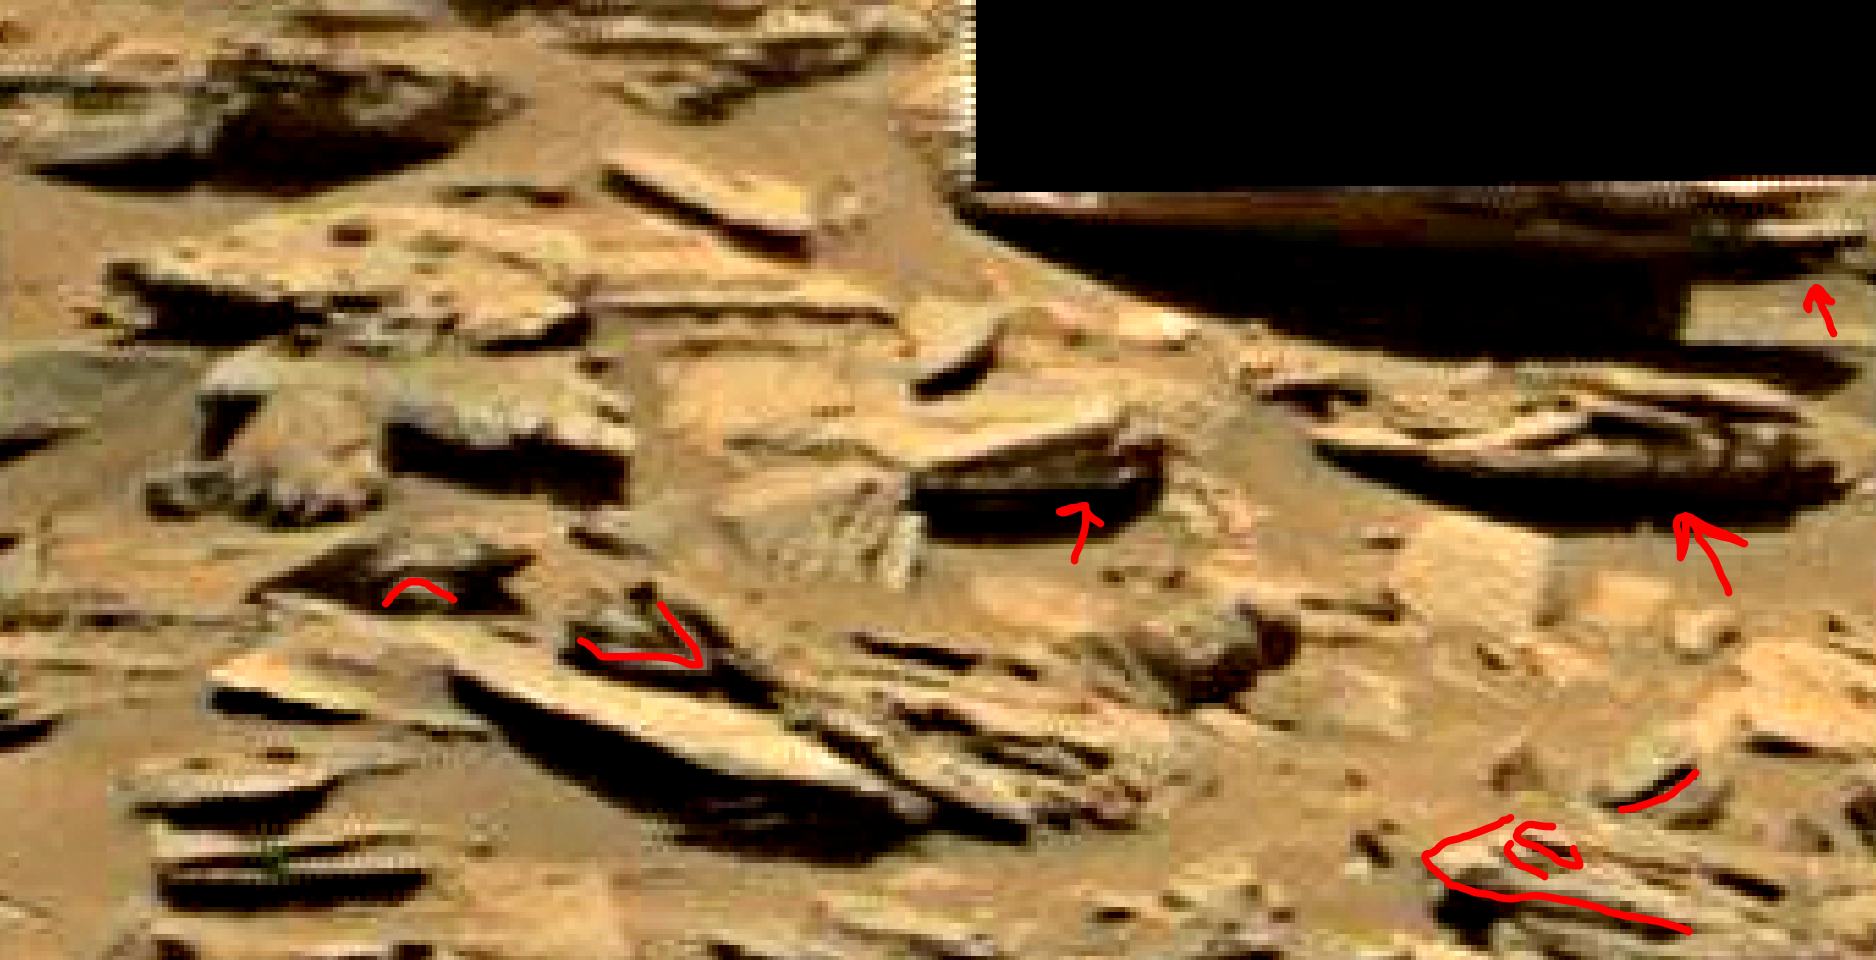 mars sol 1353 anomaly-artifacts 28b1 was life on mars